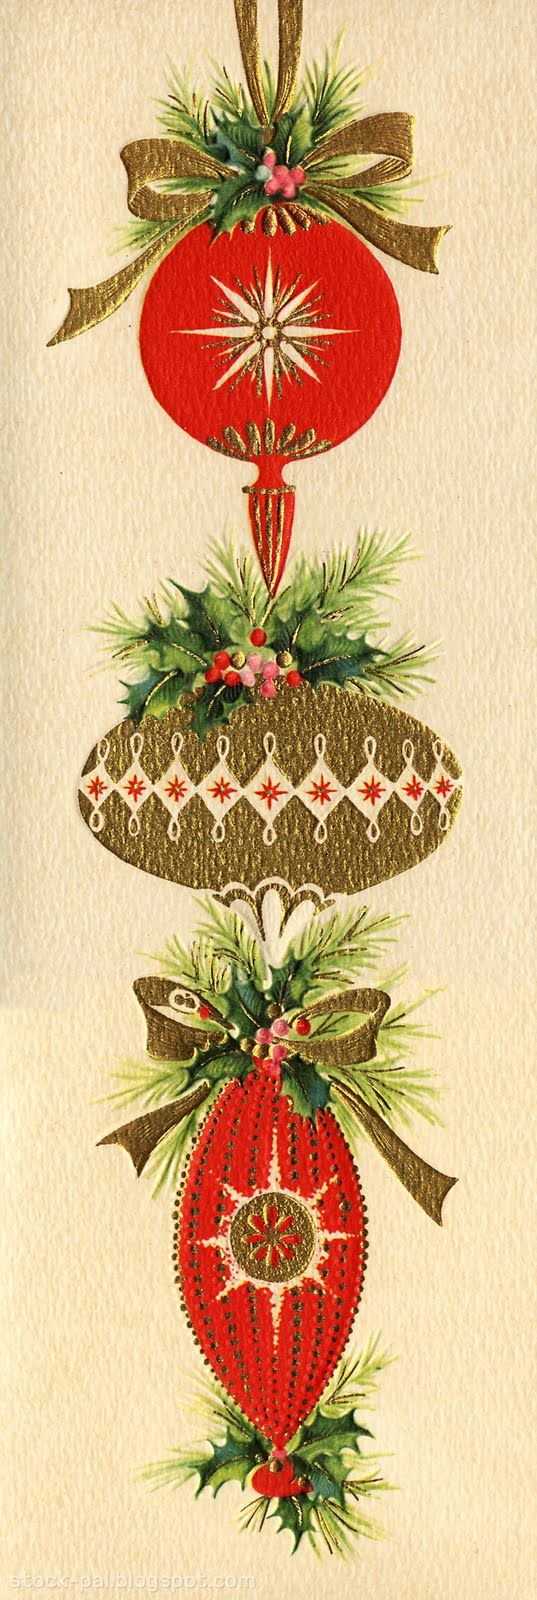 Vintage Cards...  Vintage Christmas Paper Crafts  All of the FREE Vintage Christmas Card images on this blog are shrunk to no larger than 900 pixels wide for web nimbleness—but Higher-resolution versions of each image (averaging 1500 x 2000 pixels each) are available for purchase on CD by clicking either here or on this small banner (below)